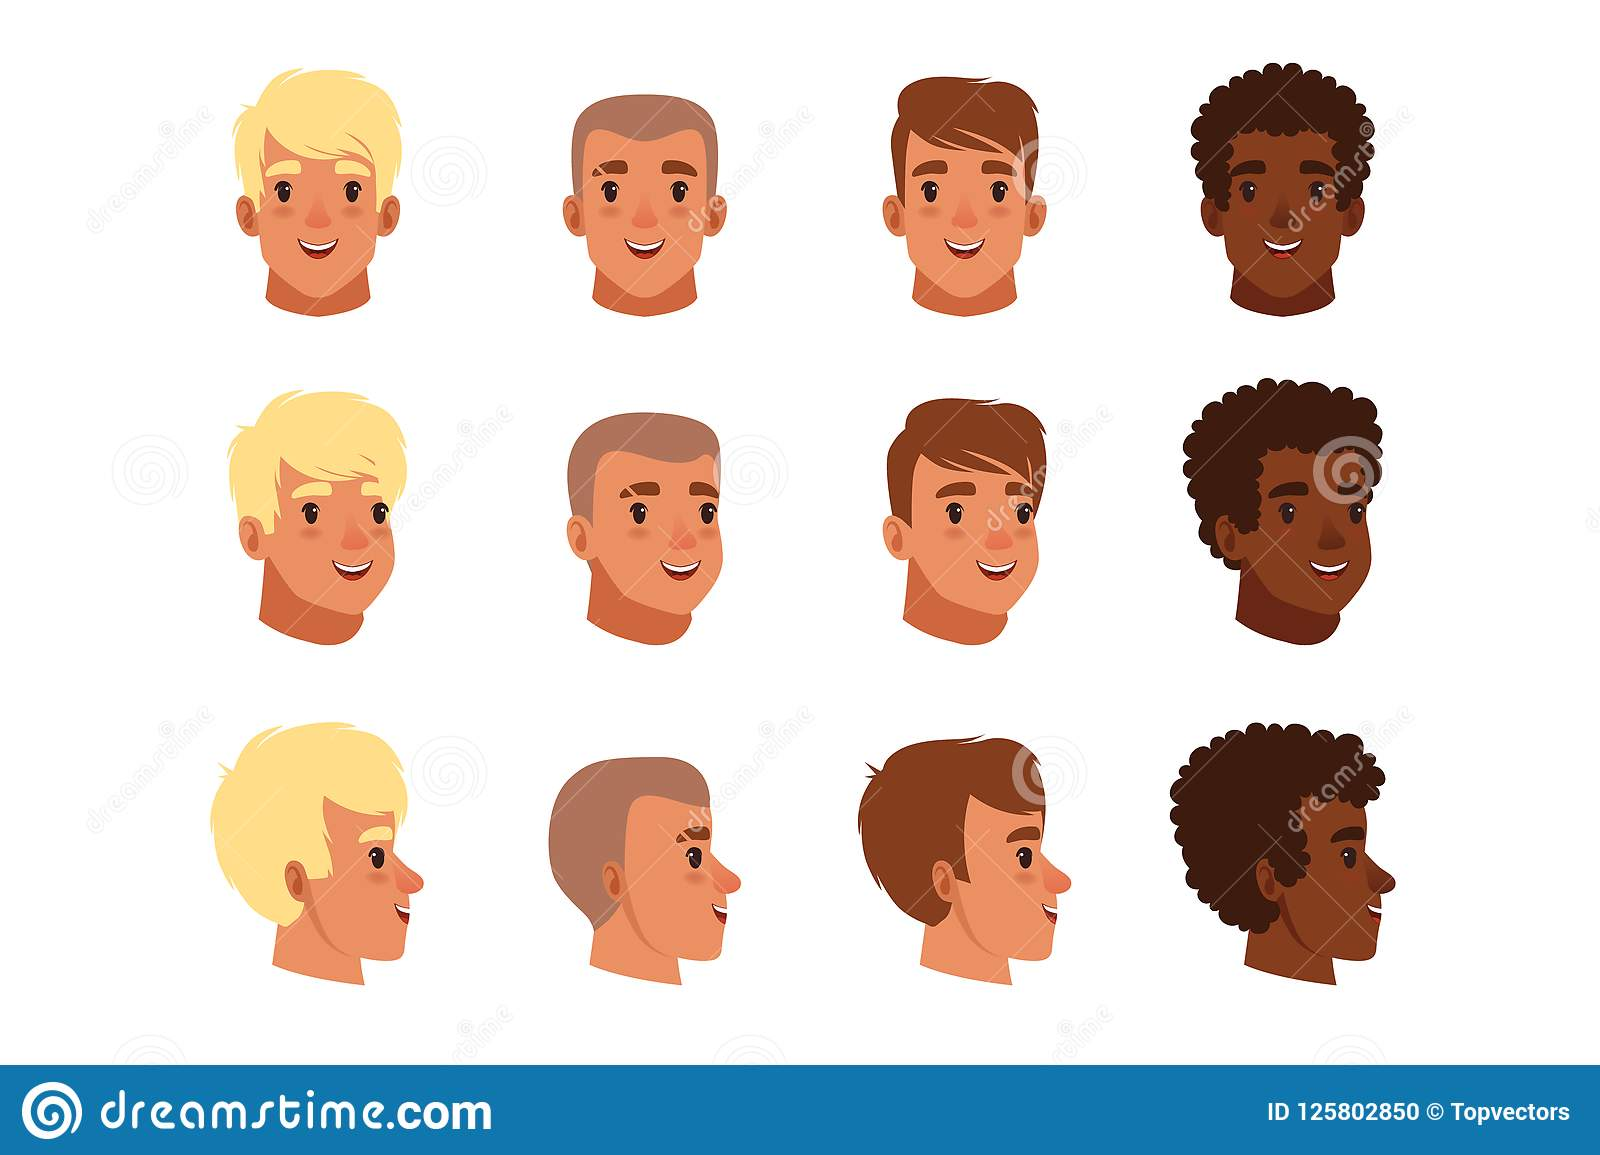 Illustration Of Men Head Avatars Set With Different Haircuts